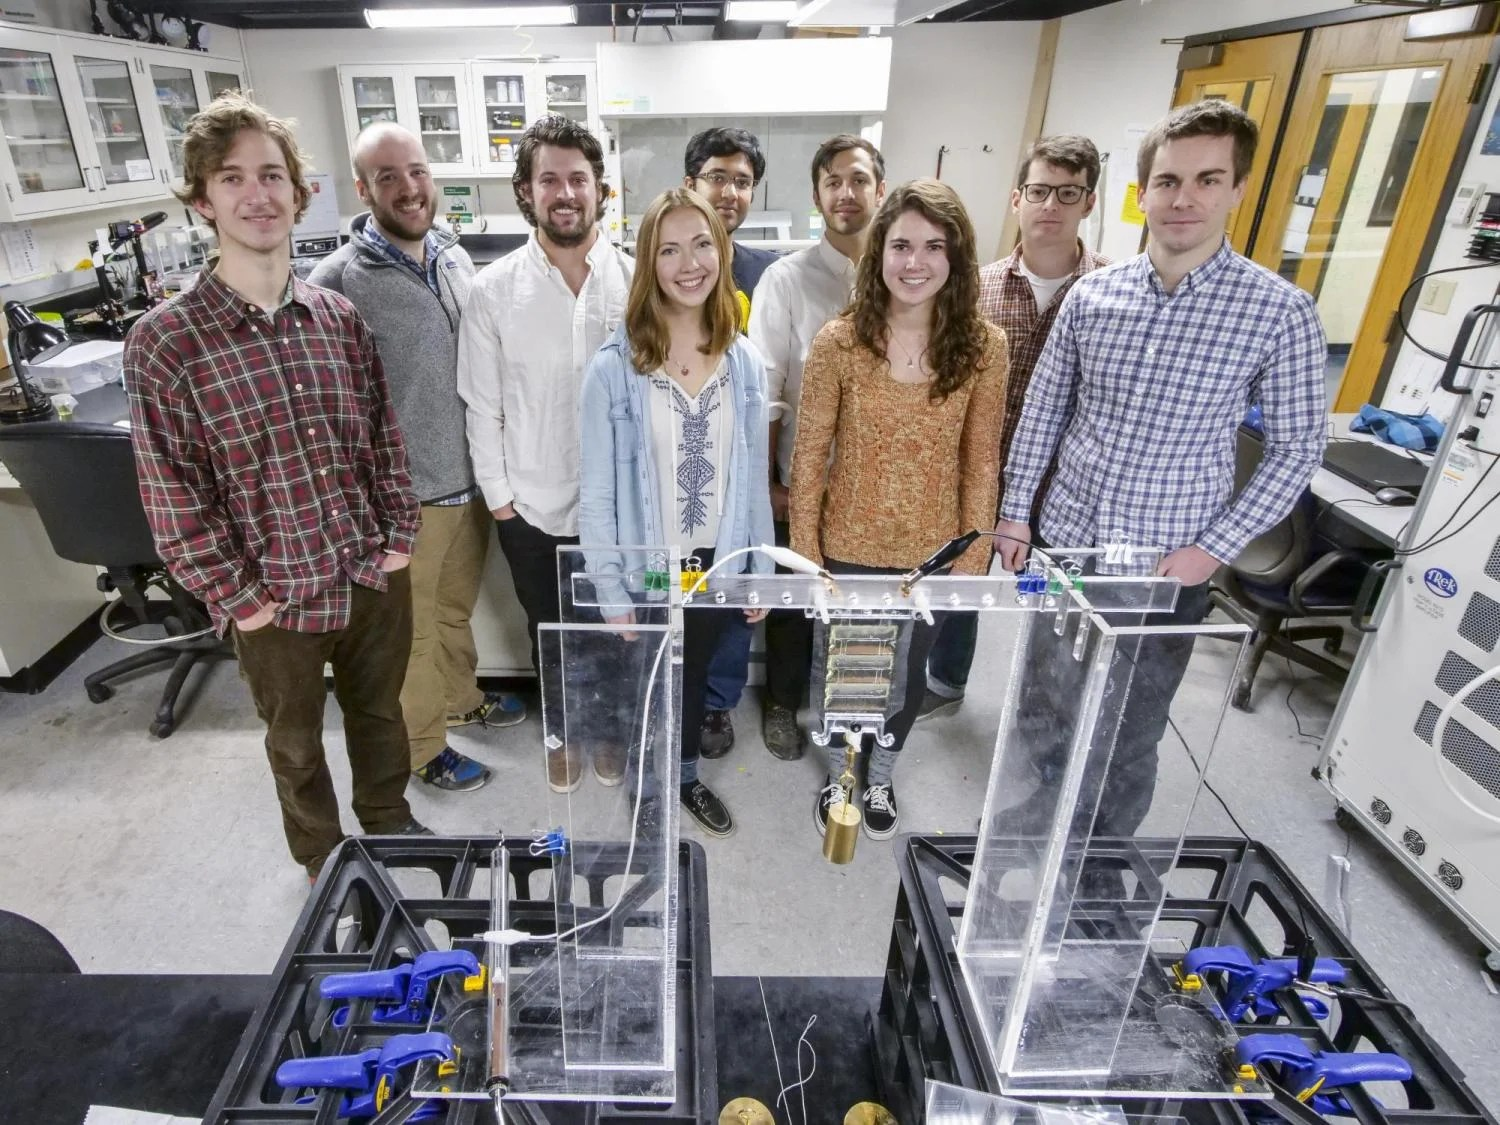 Assistant Professor Christoph Keplinger, graduate student Eric Acome, undergraduate student Madison Emmett, graduate student Nick Kellaris, graduate student VC Gopaluni Venkata, undergraduate student Madeline King, graduate student Shane Mitchell, PhD candidate Timothy Morrissey, and undergraduate s